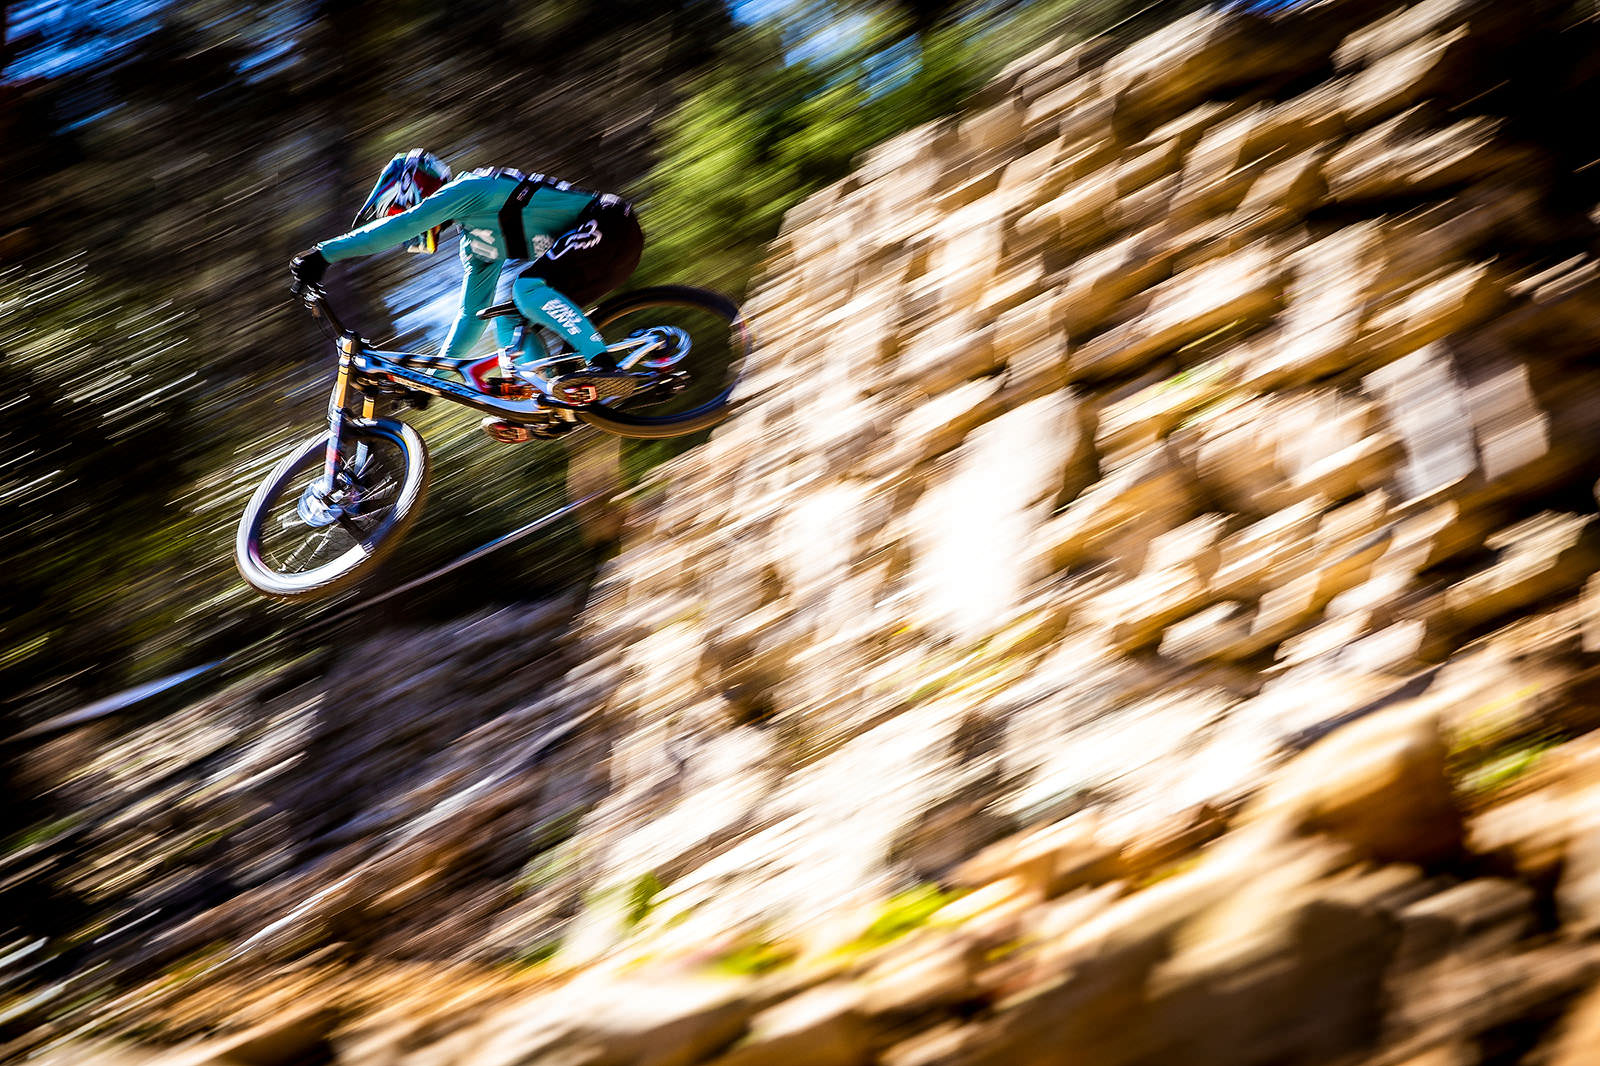 Santa Cruz Bicycles - Pan Shot of Loris Vergier of The Syndicate at the Losinj World Cup DH Race